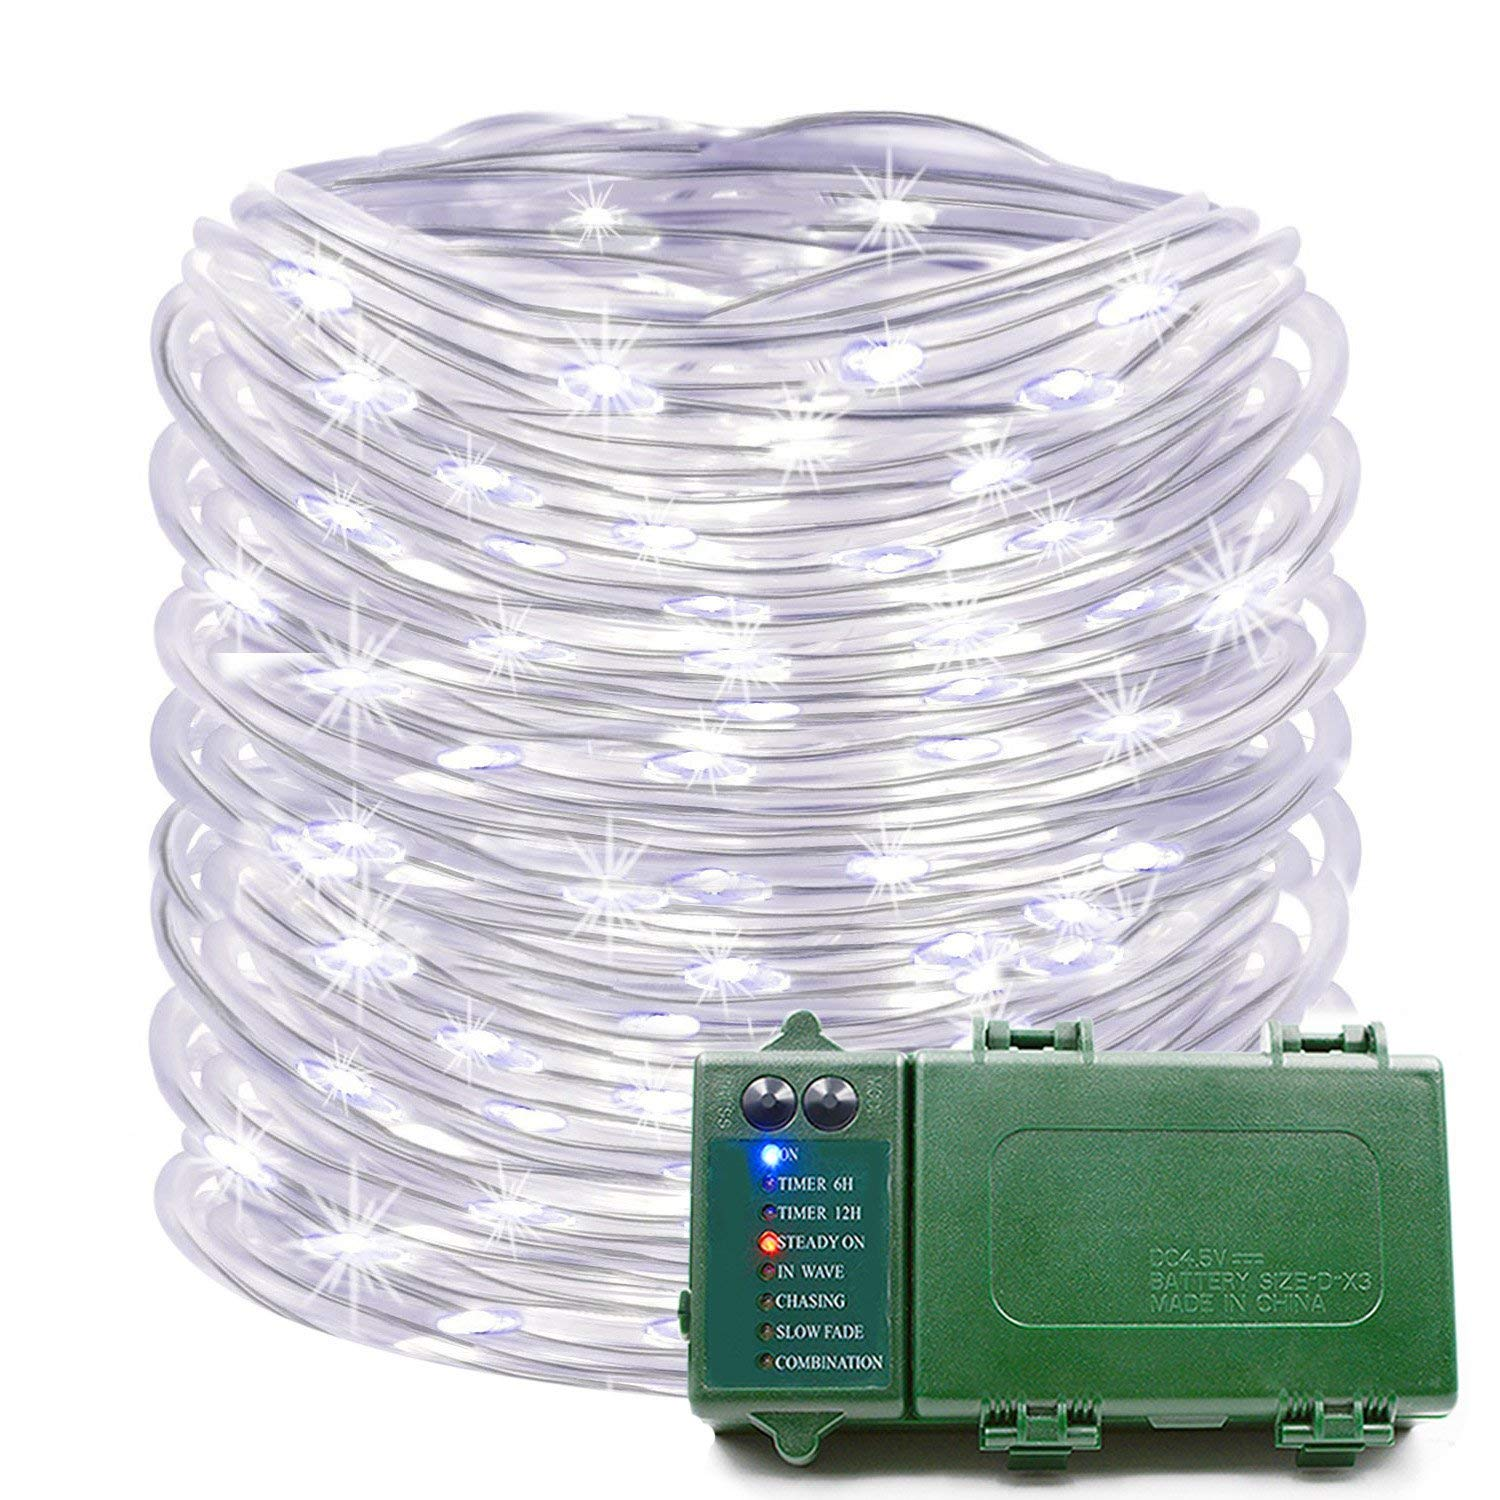 Cheap Garden Lights Battery Powered Find Electrical Wiring Outside Get Quotations Konnoo Rope 39 Ft 120 Led Operated String Waterproof Christmas Decorative Fairy